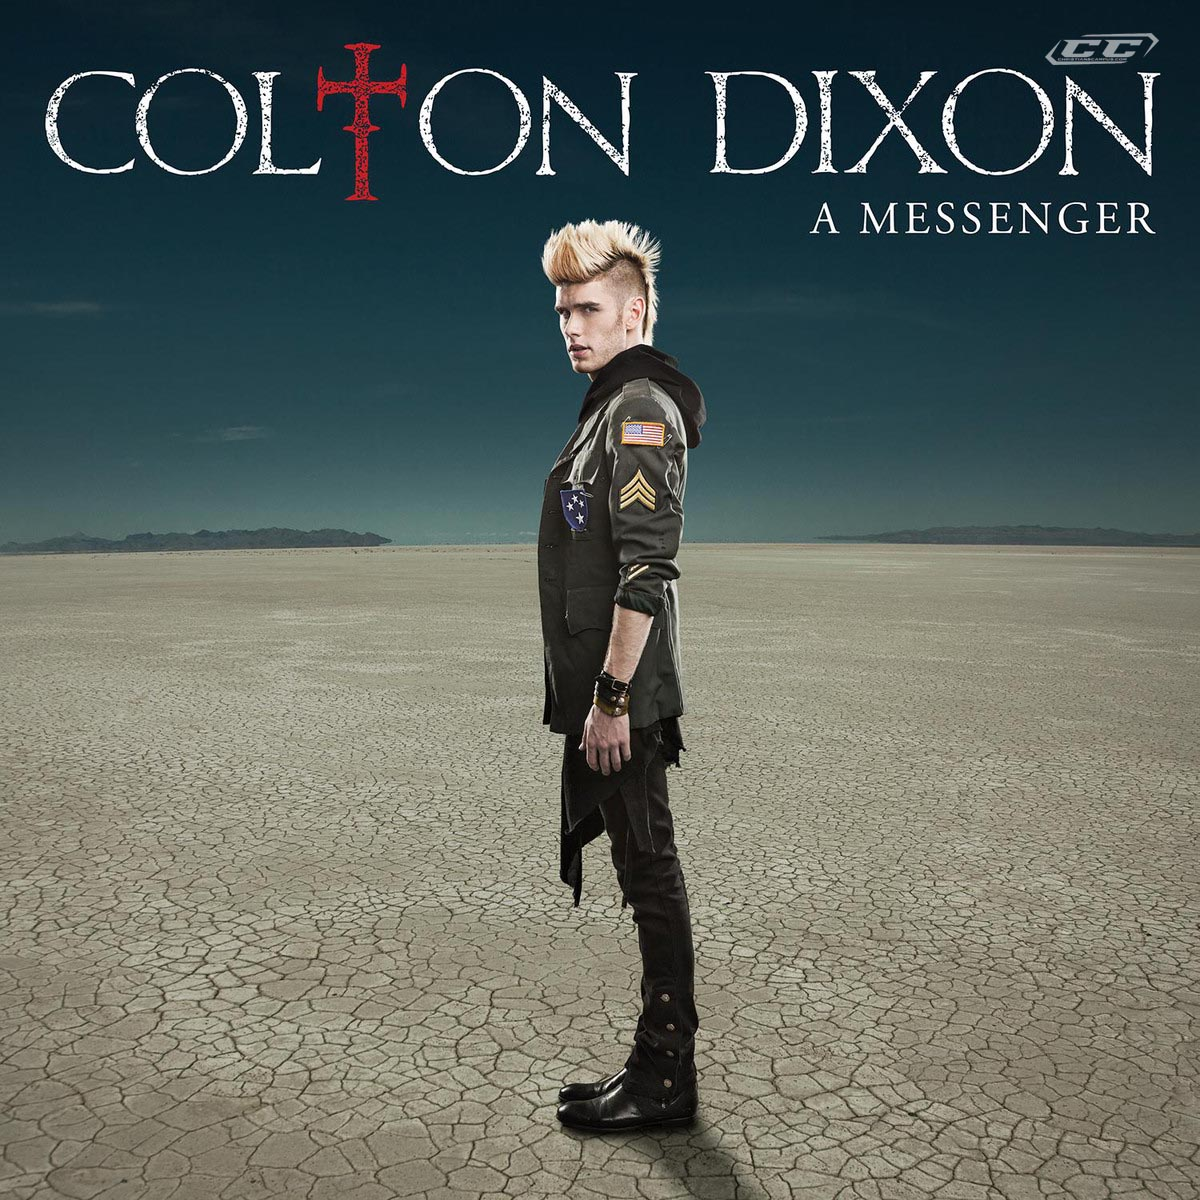 Colton Dixon - A Messenger 2013 English Christian Album Download